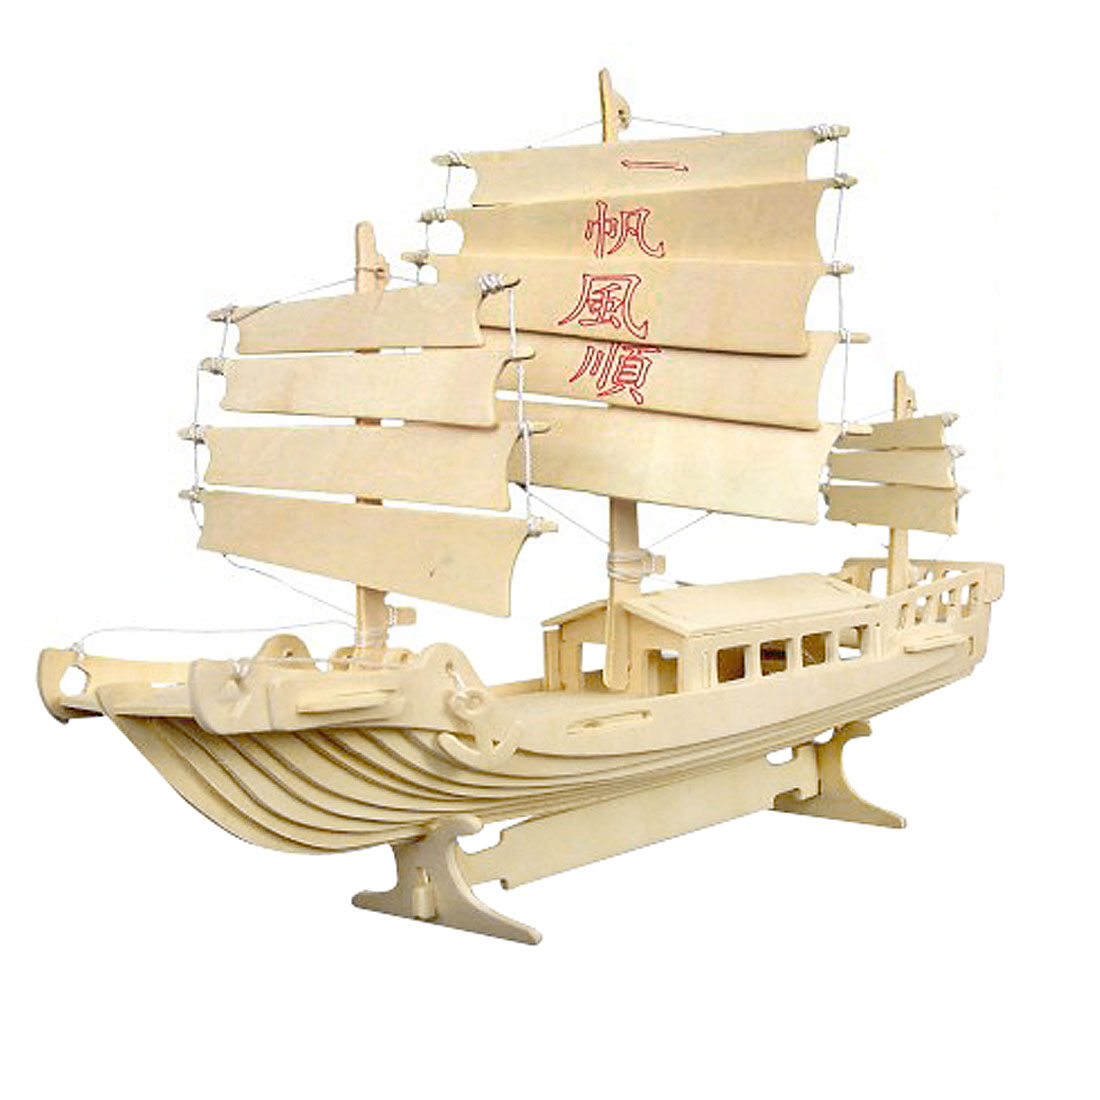 Assembly DIY 3D Wooden Chinese Junk Model Construction Kit Puzzle Toy Gift